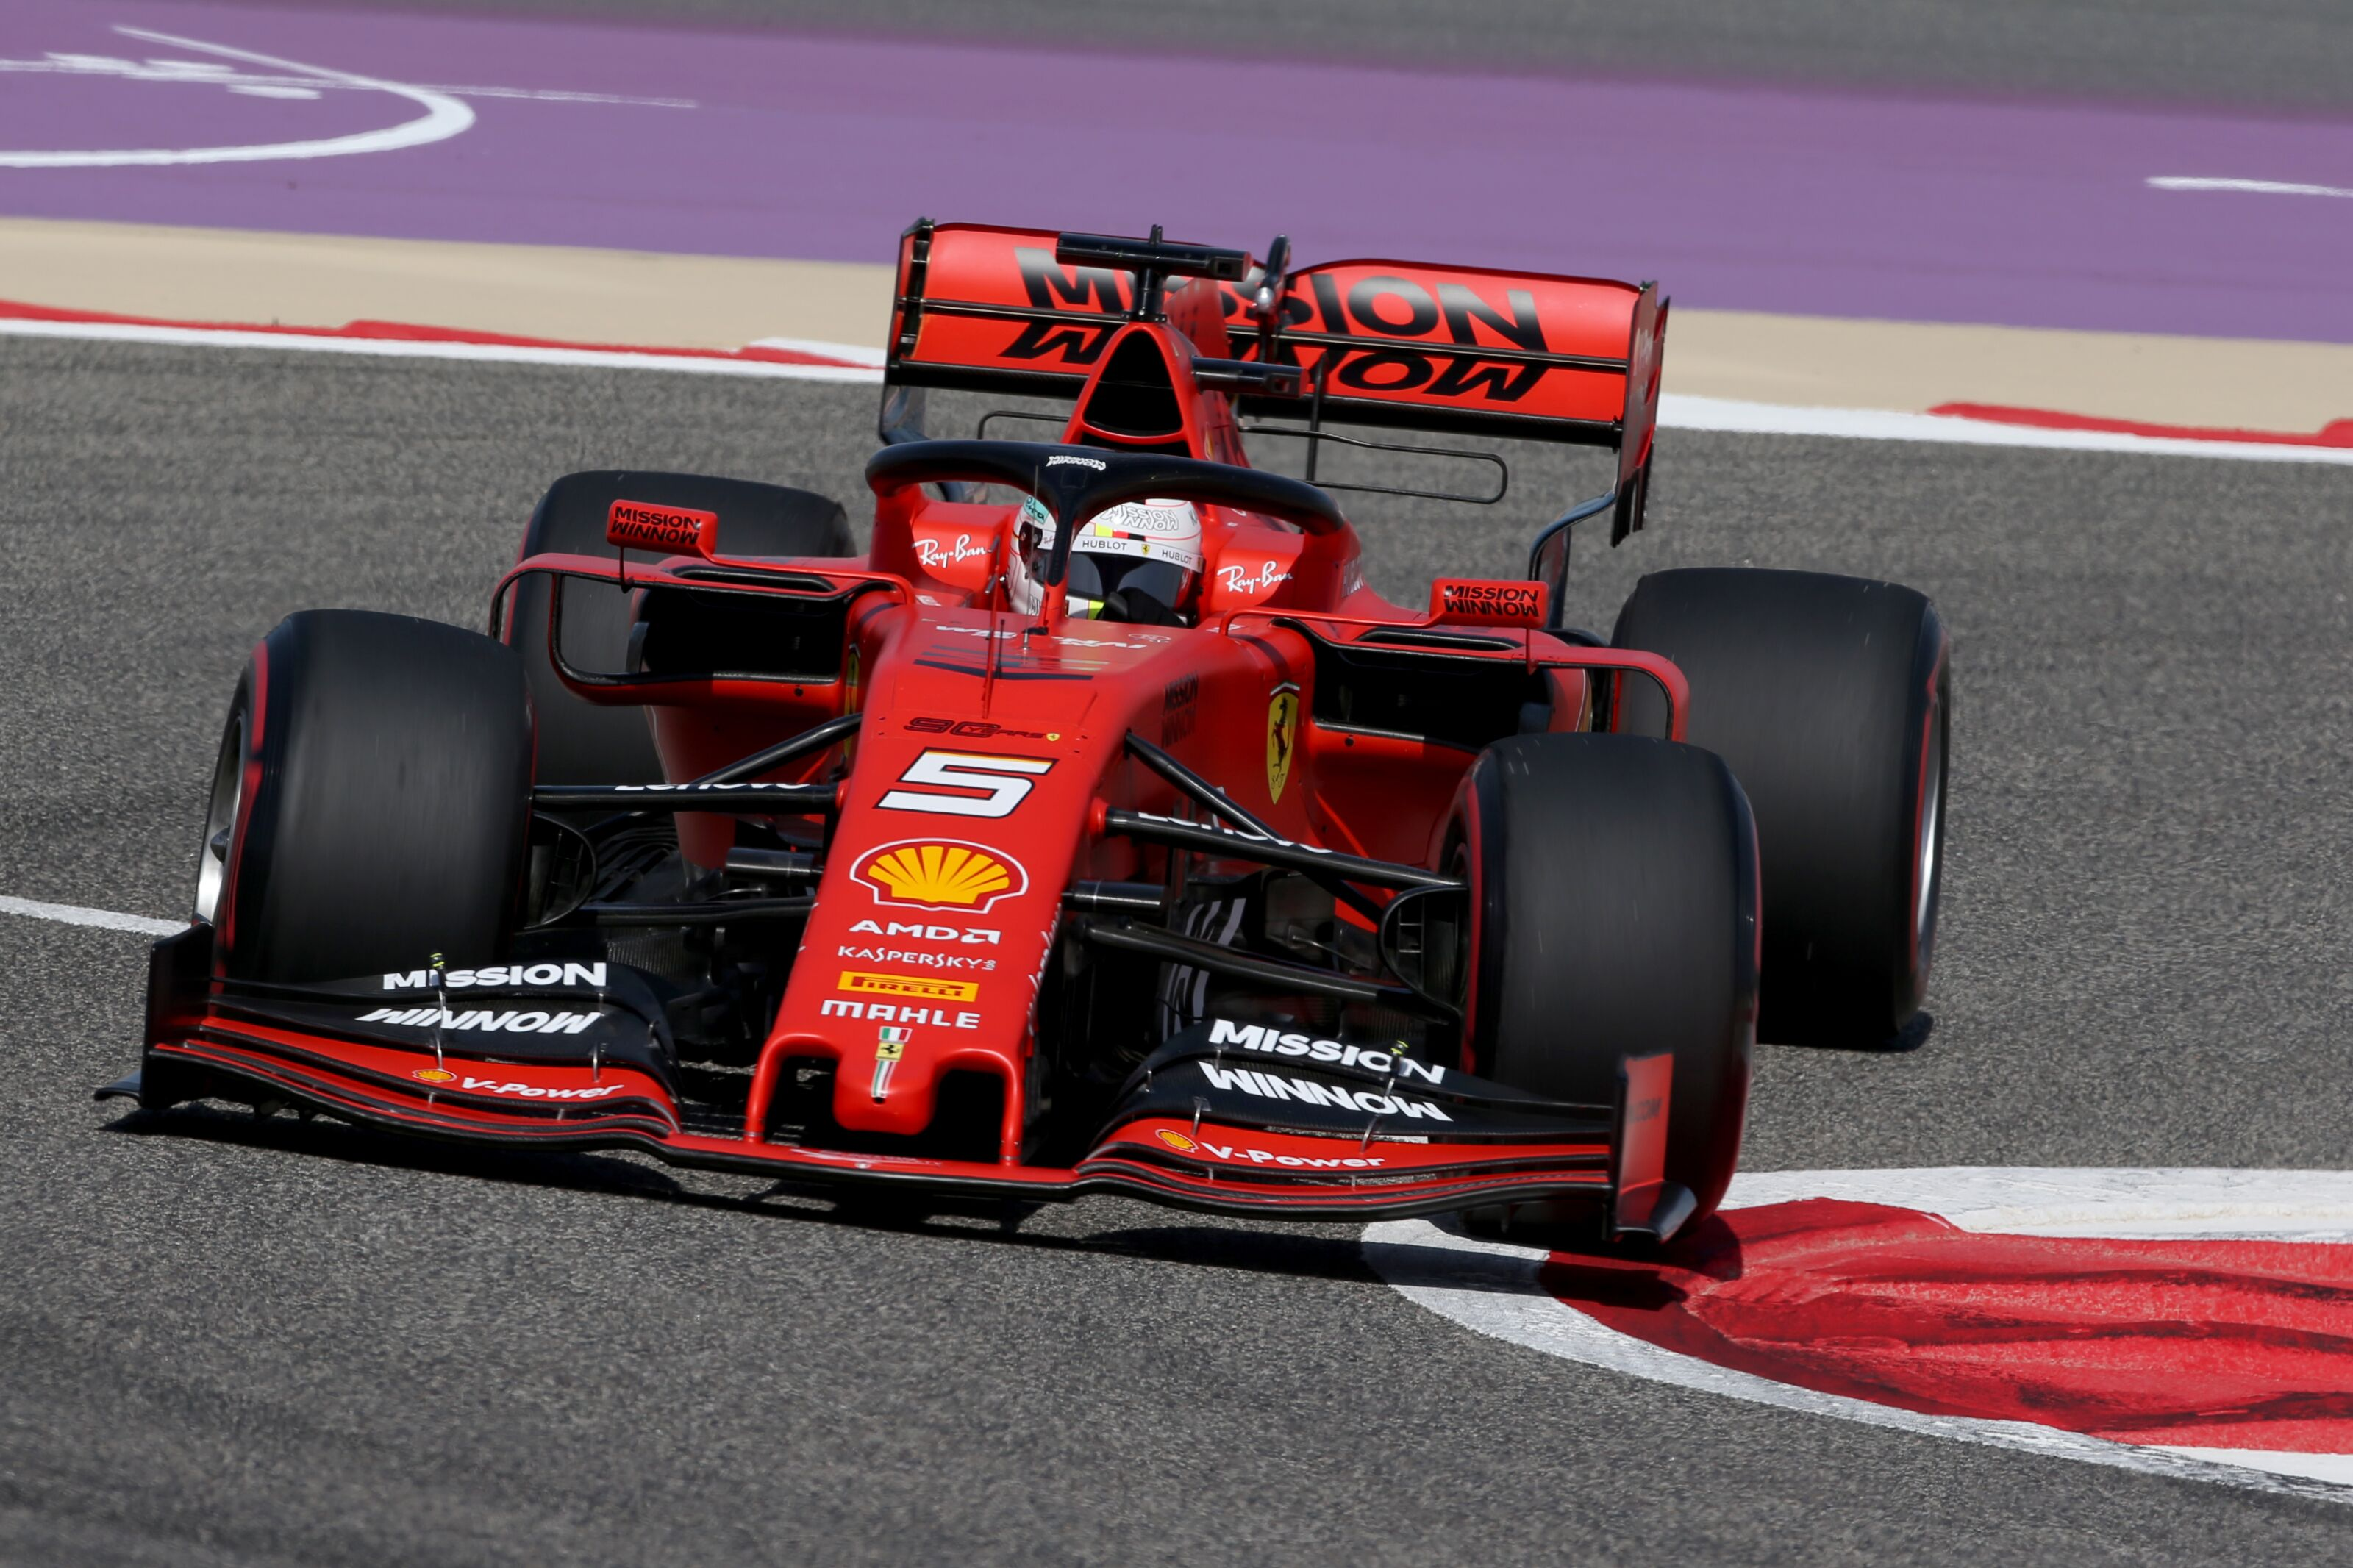 Formula 1: Ferrari appear to be frontrunners following Bahrain practice